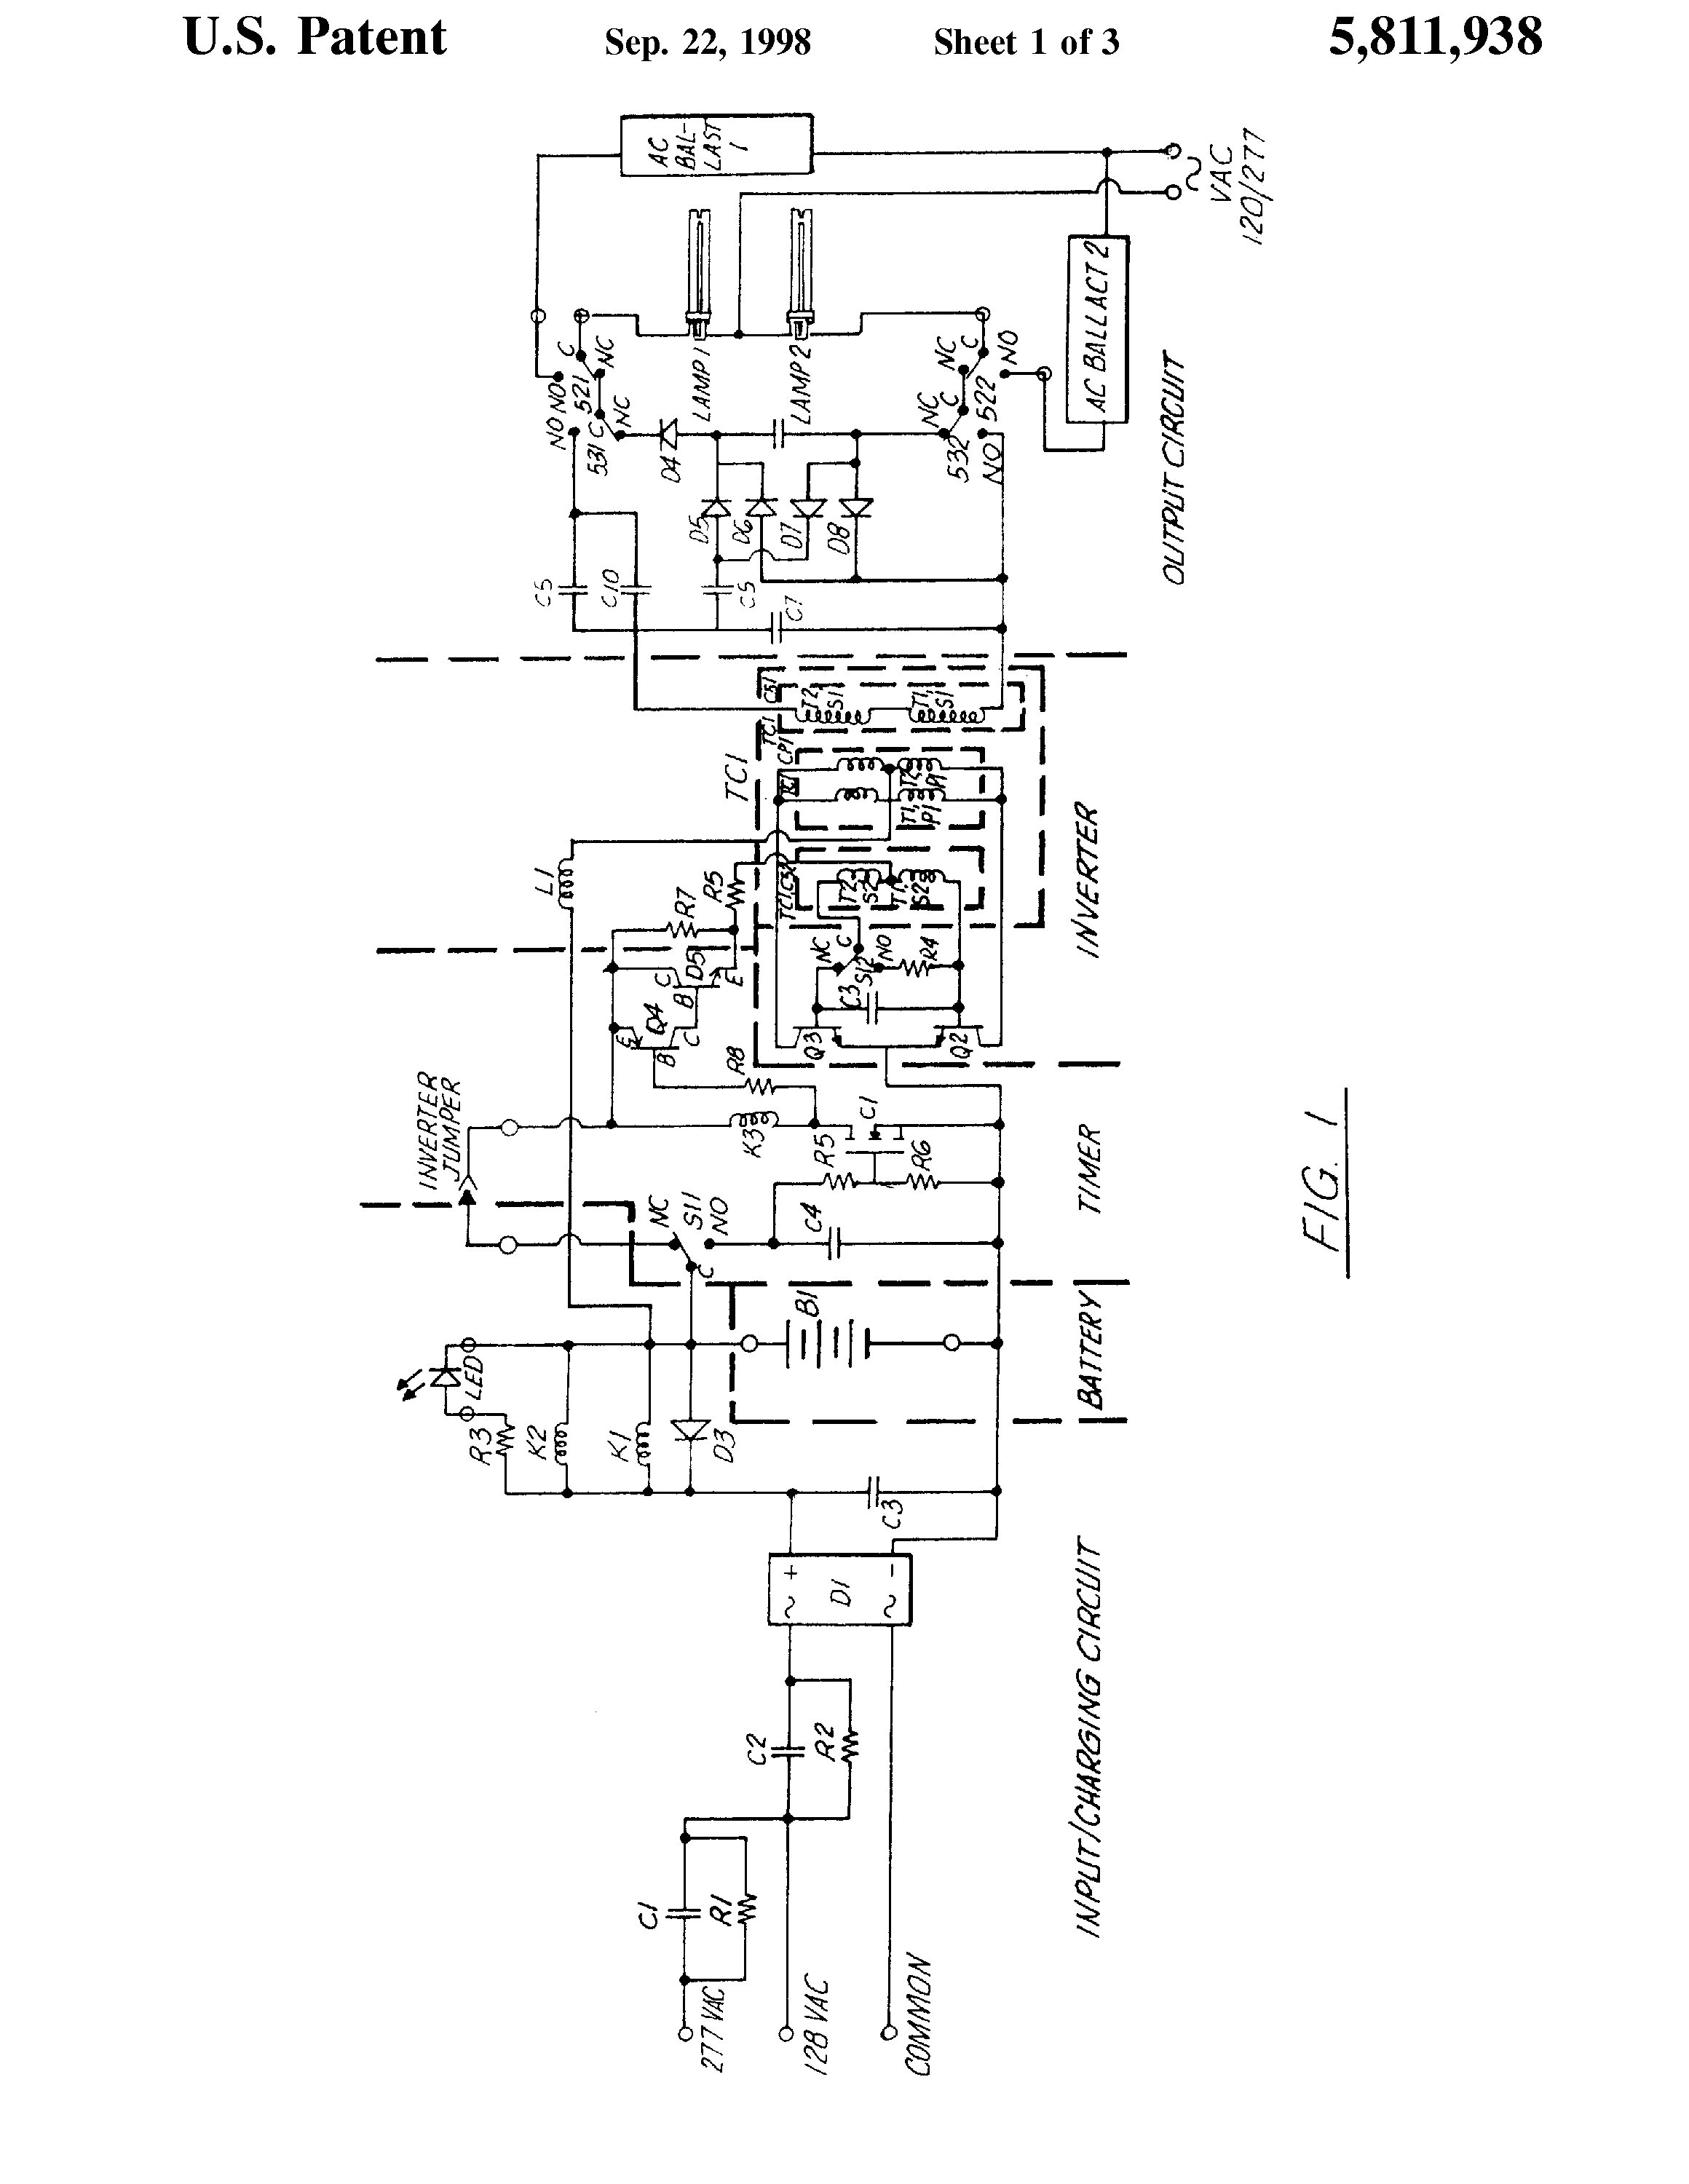 az gm11 pac wiring diagram